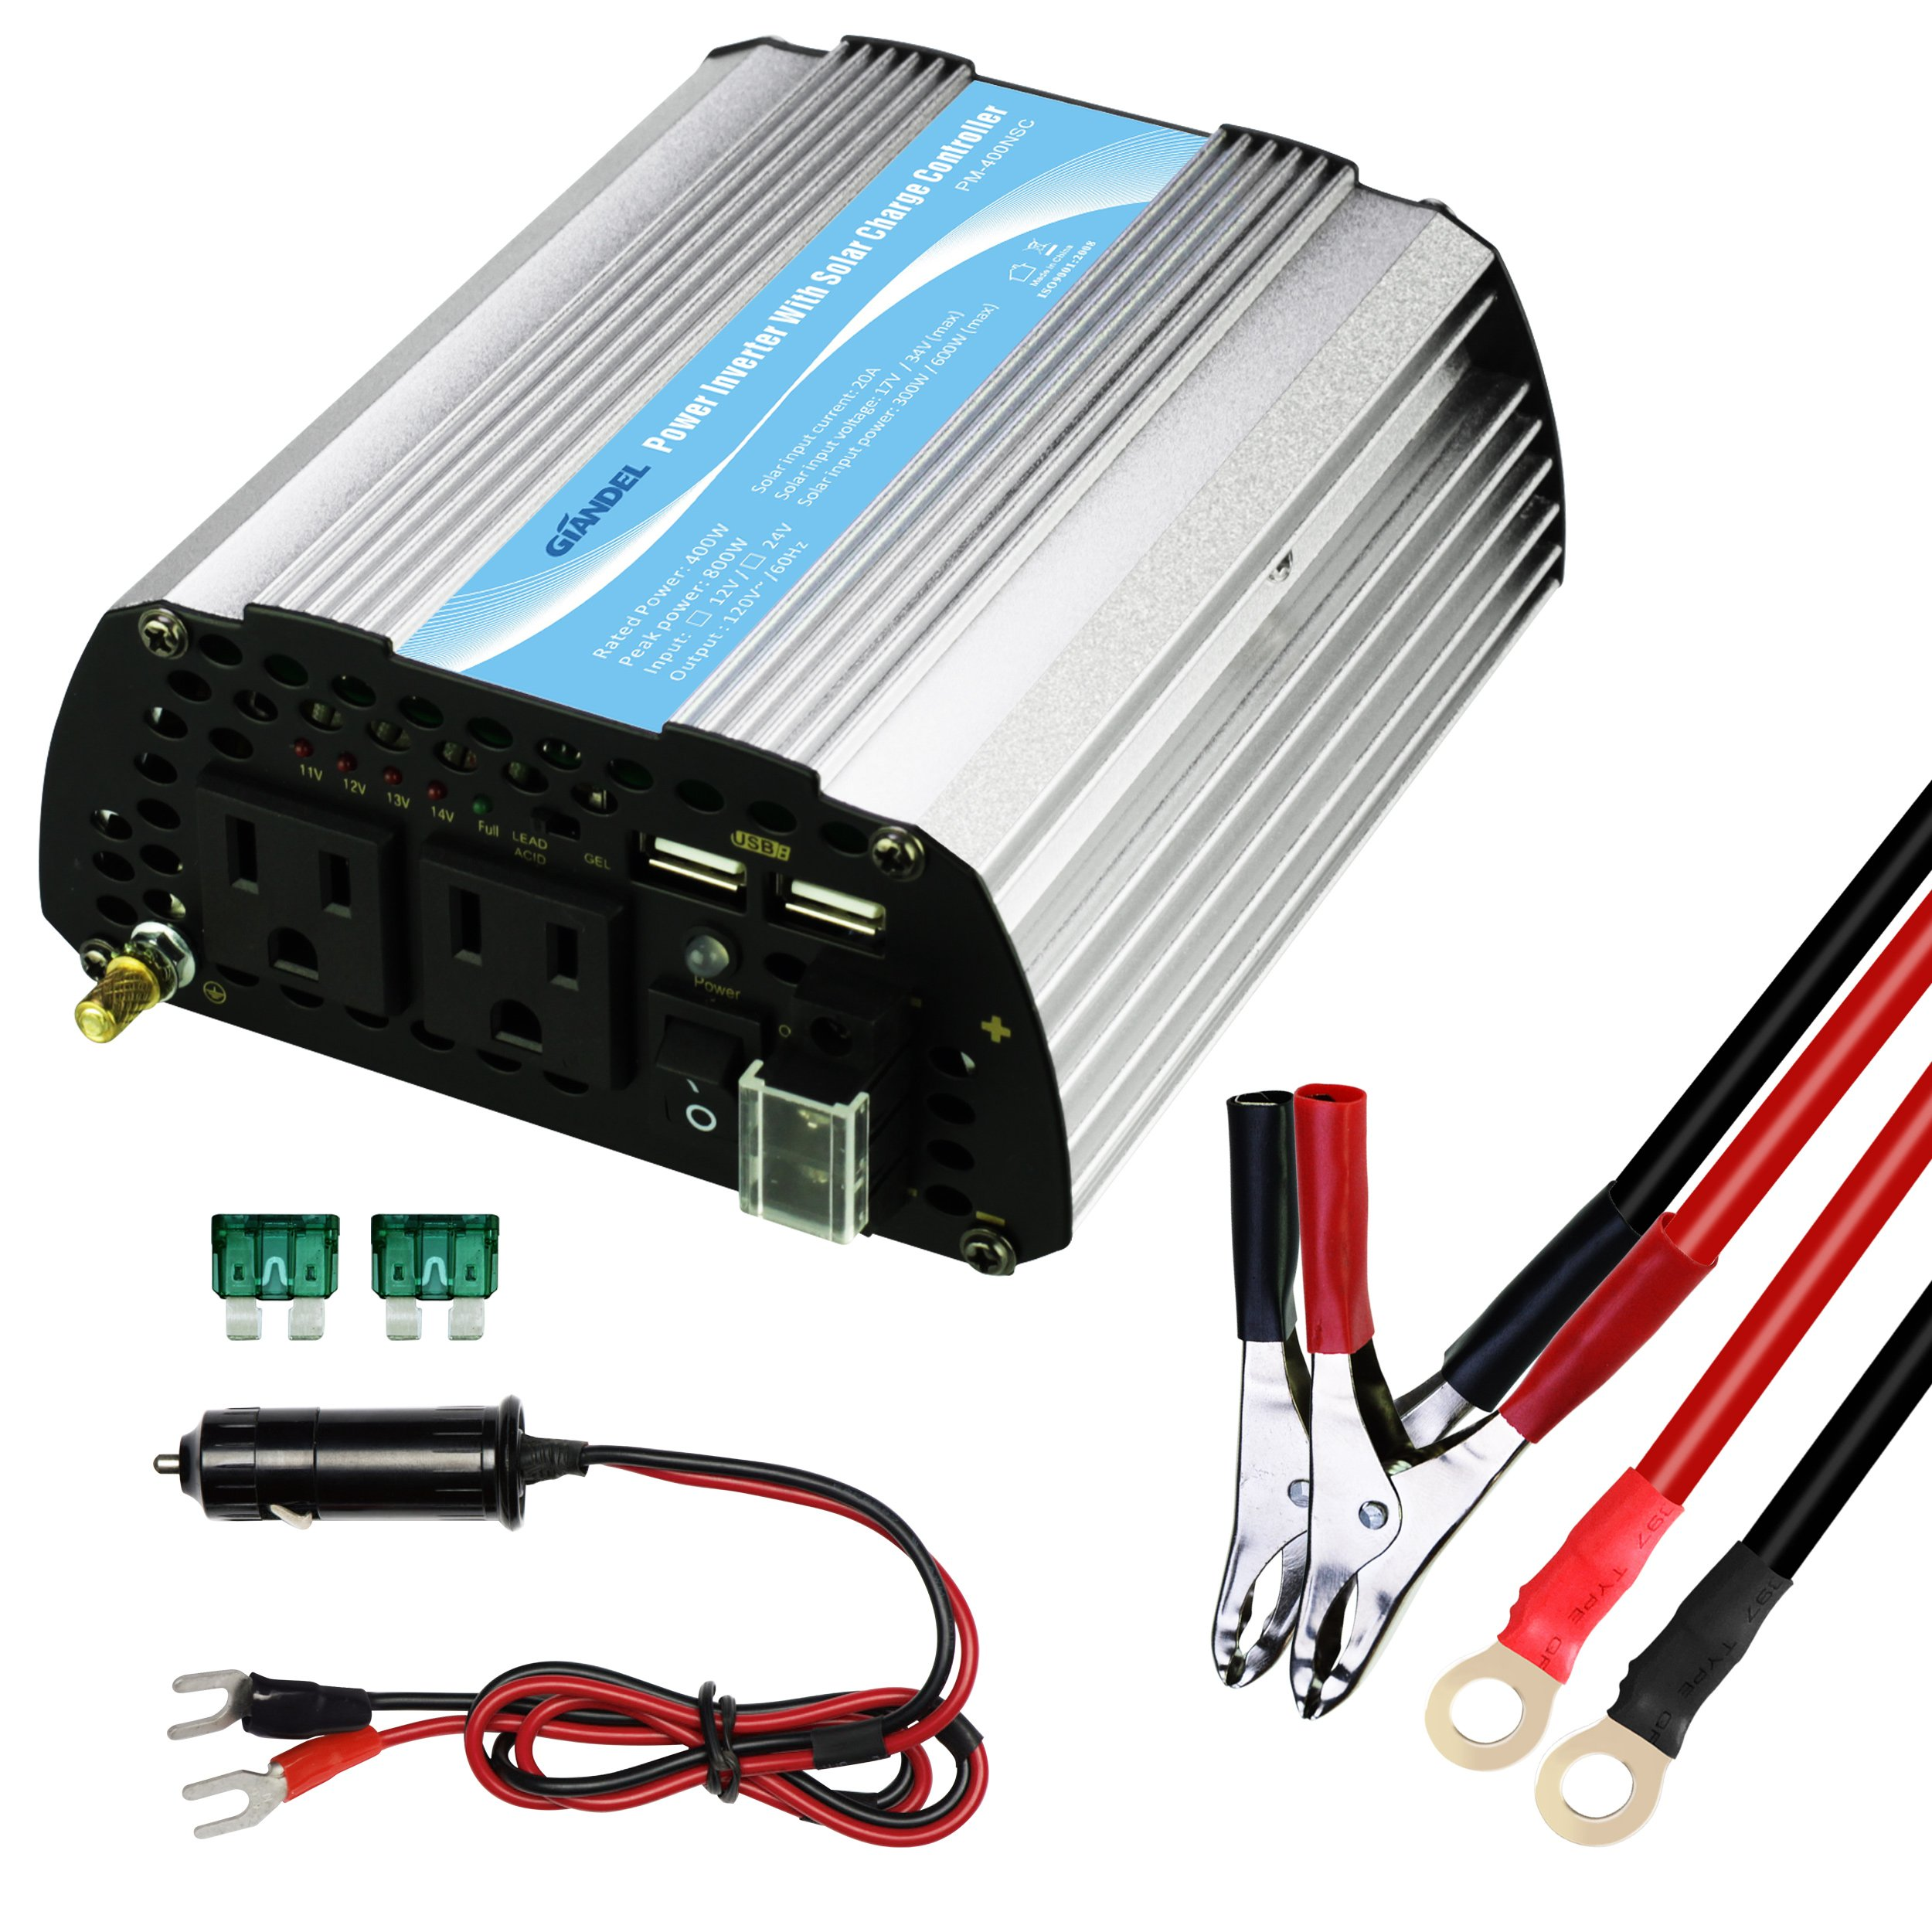 400w Car Power Inverter 12v Dc To 120v Ac With Solar Charger 20a And 48 Dual